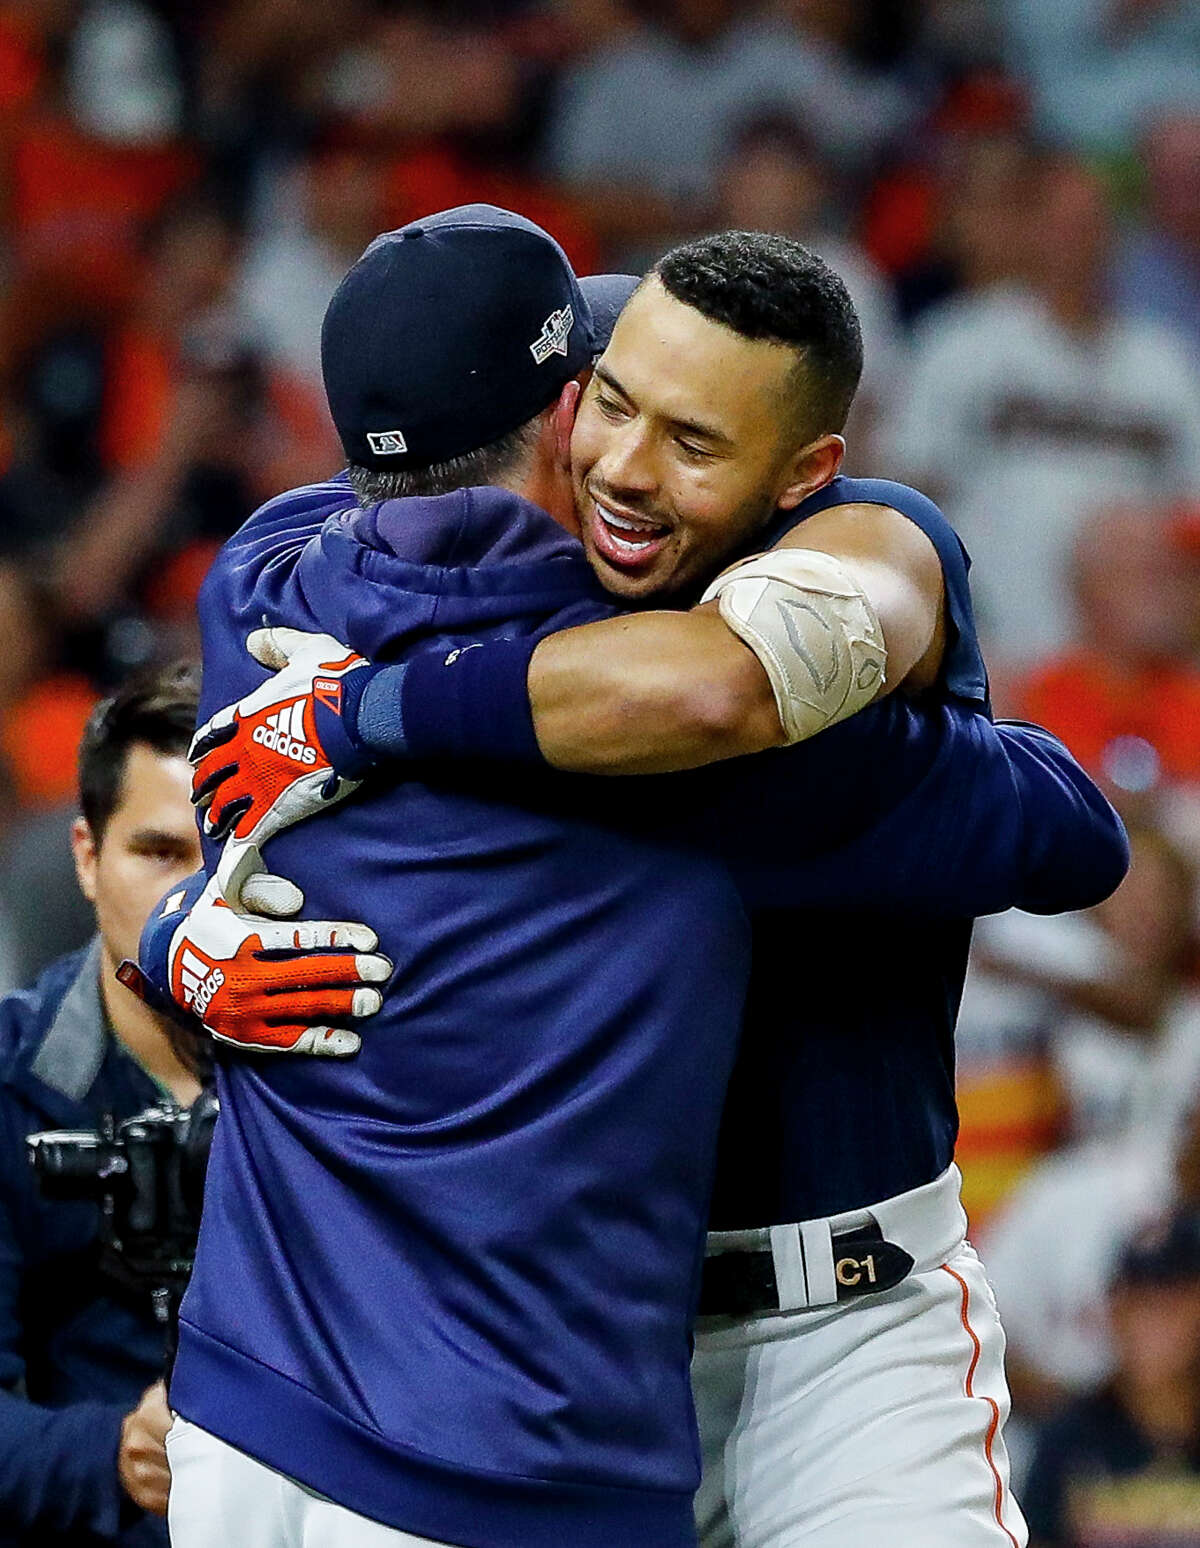 Houston Astros manager AJ Hinch (14) hugs Houston Astros shortstop Carlos Correa (1) after Correa hit a walk off home run in the eleventh inning to win Game 2 of the American League Championship Series at Minute Maid Park on Sunday, Oct. 13, 2019, in Houston.